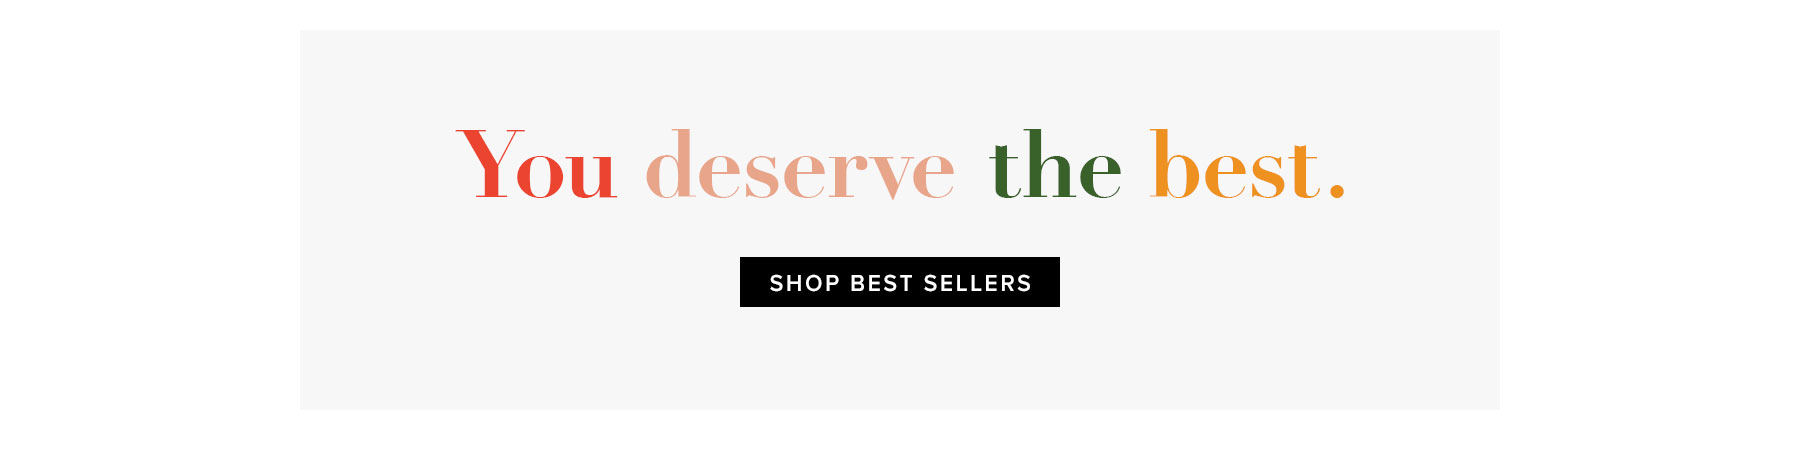 You deserve the best. Shop best sellers.